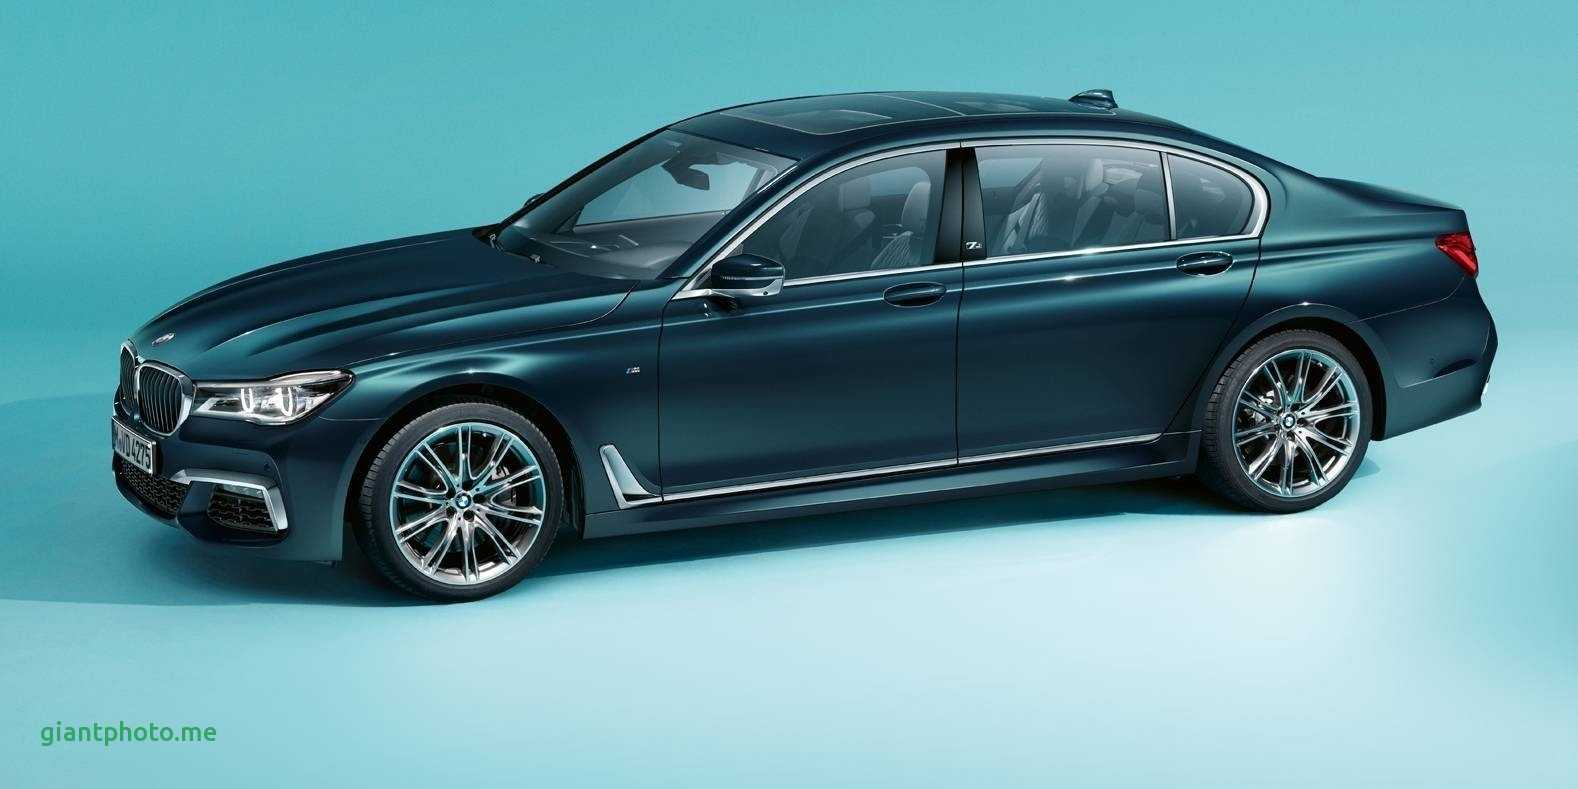 49 The 2020 BMW 7 Series Perfection New Release Date